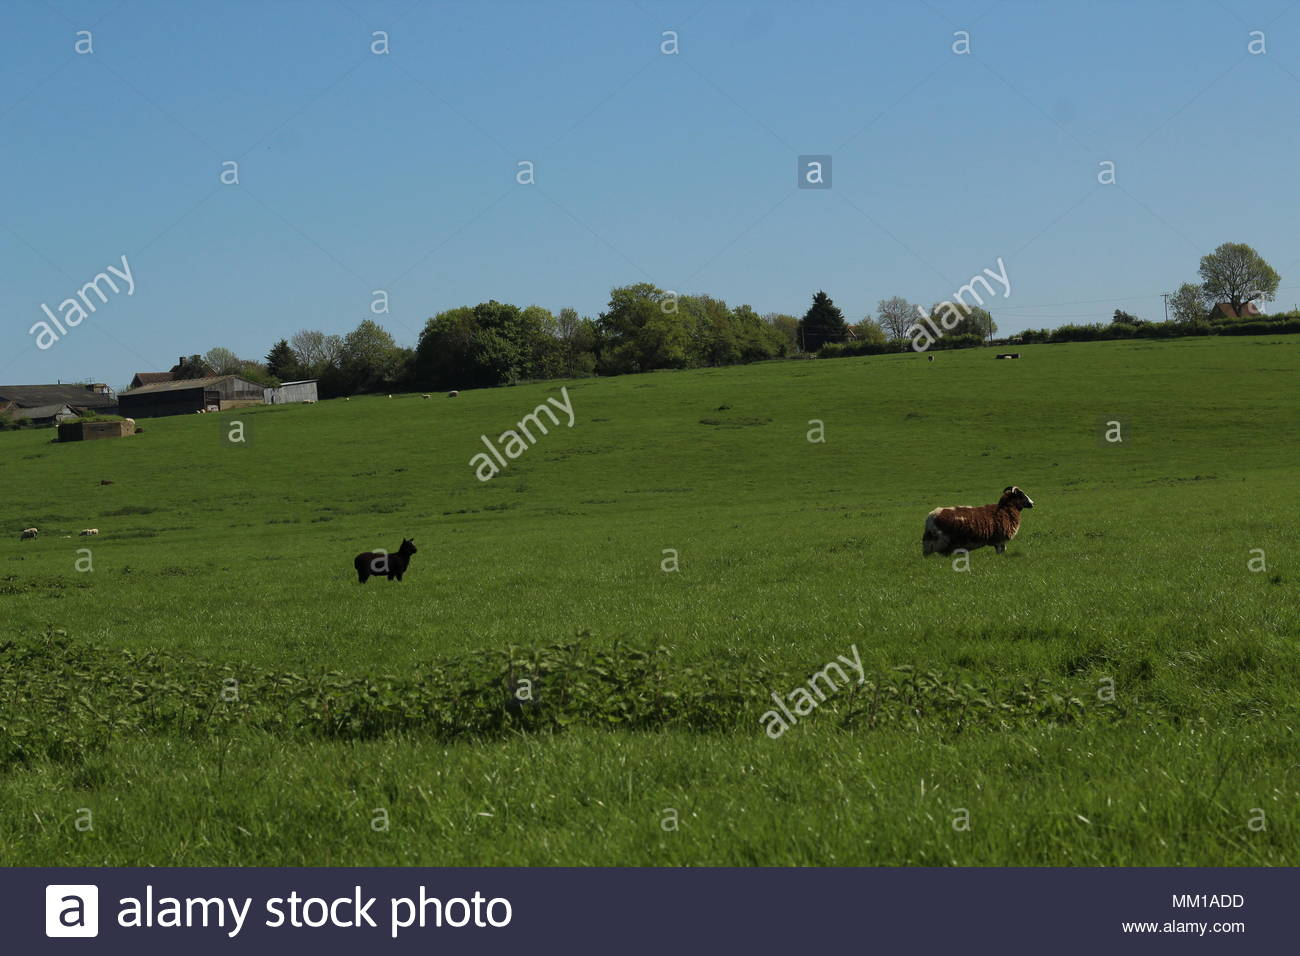 Part of a Series - Angry Mother on Warpath, Ewe and lamb re-united Colchester, Essex, UK - Stock Image